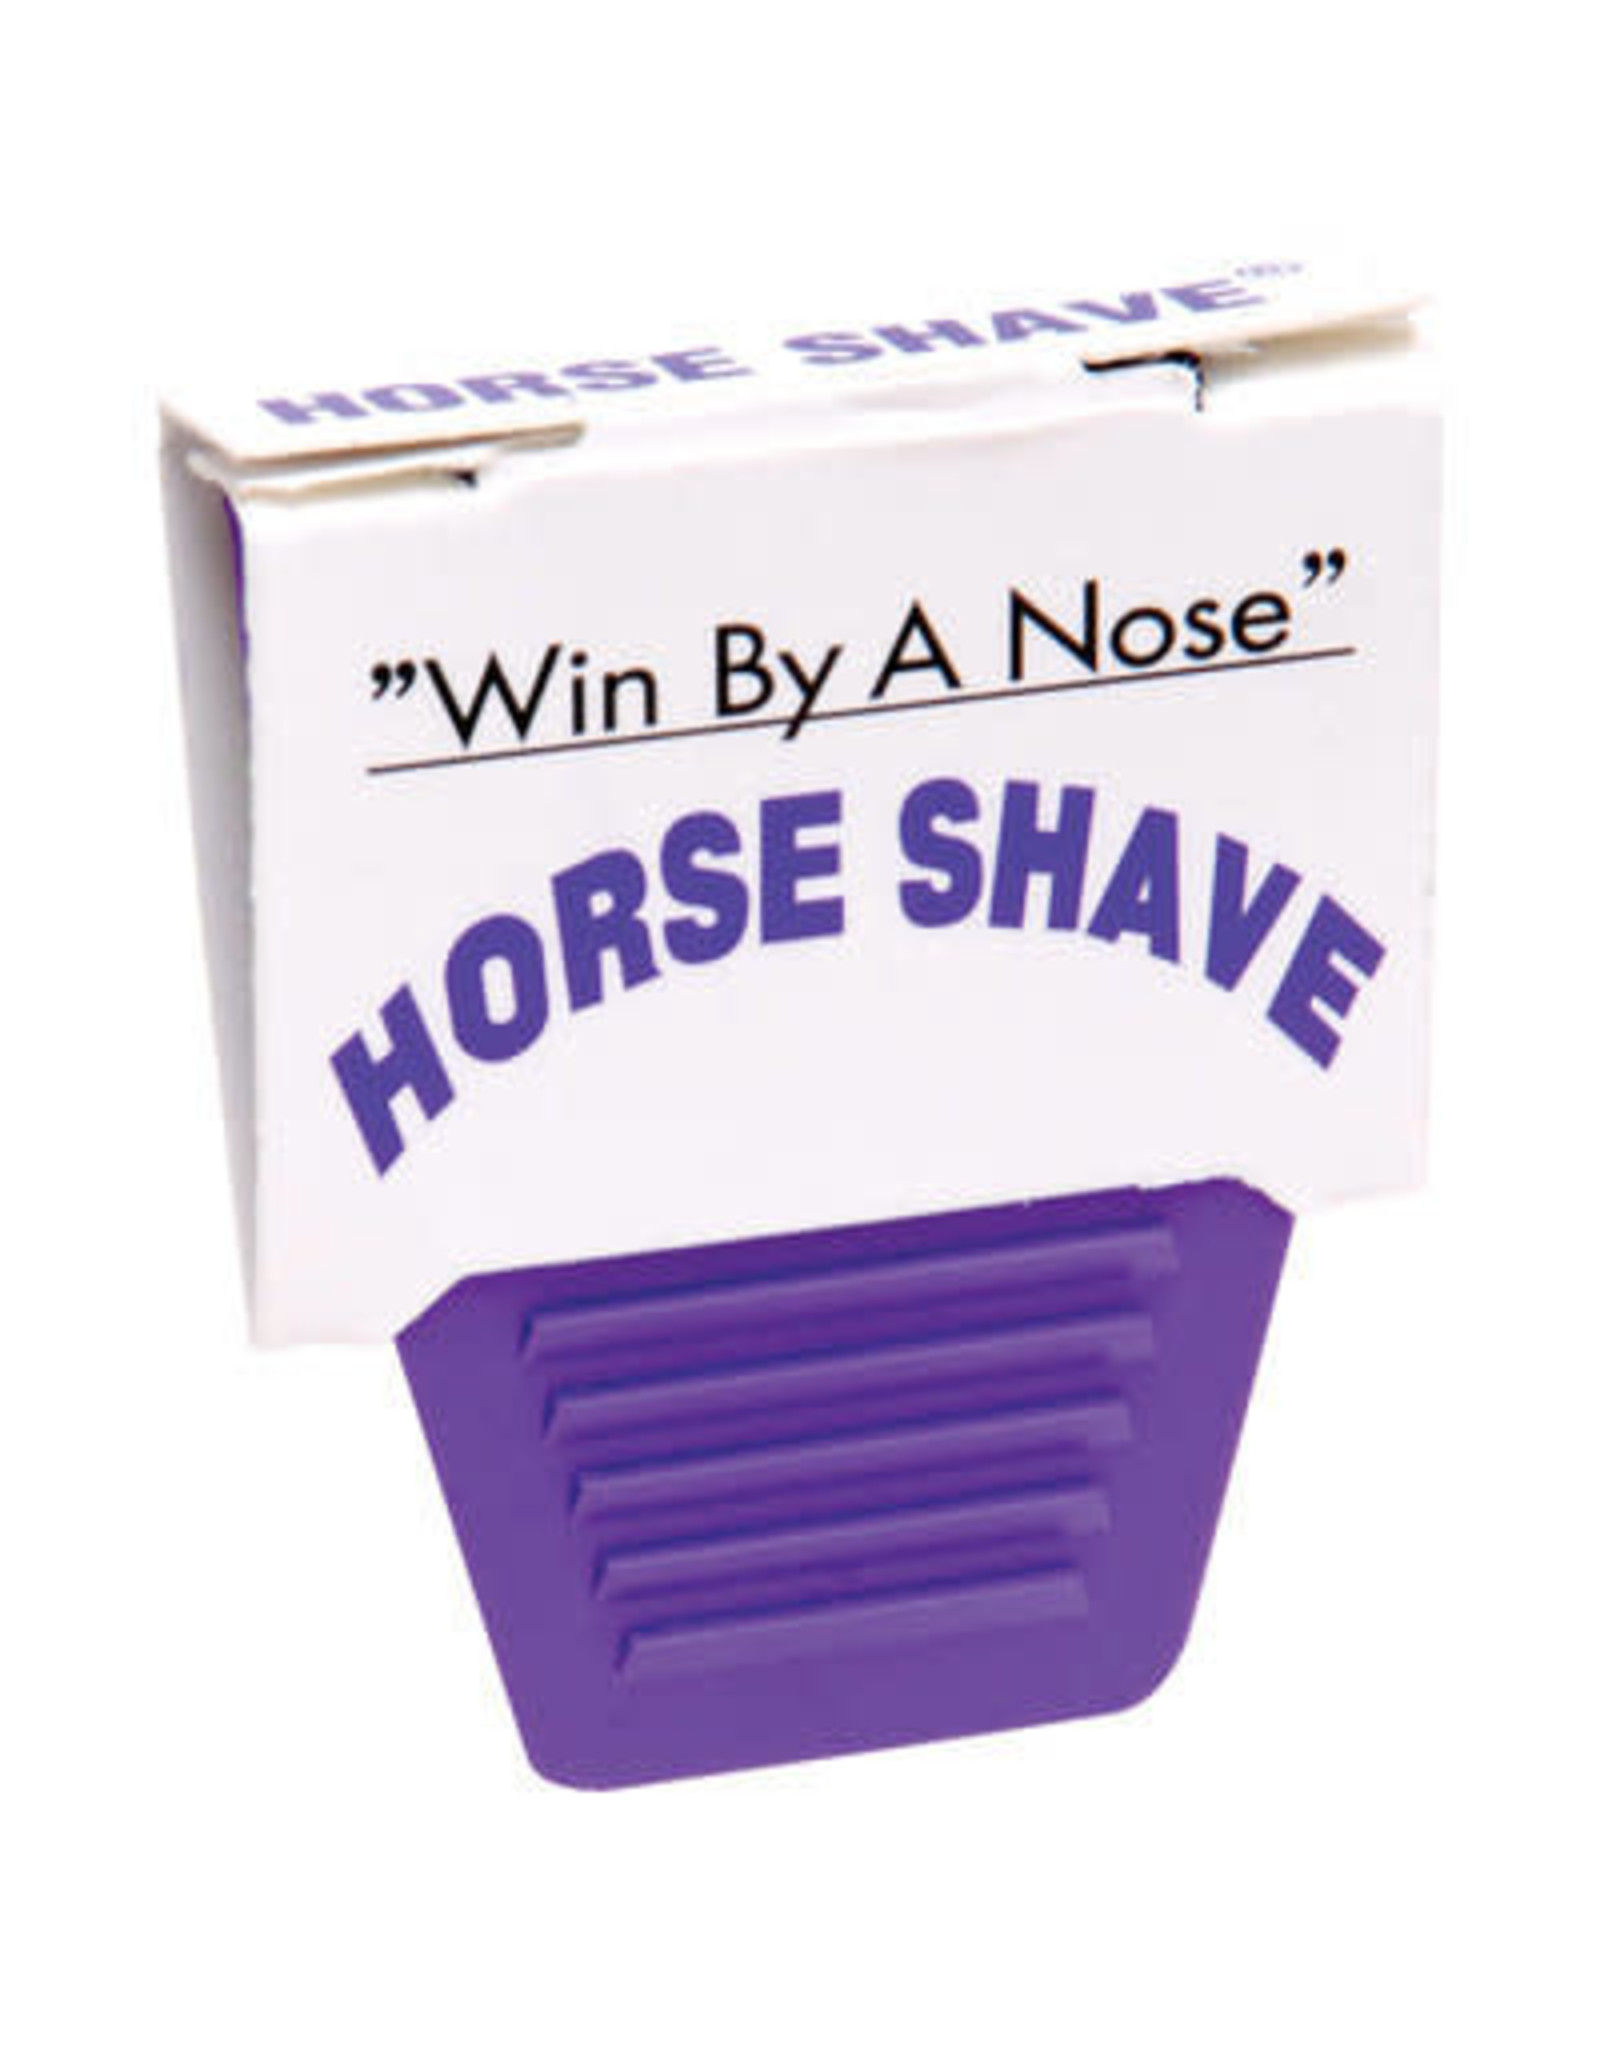 Horse Shave Grooming Razor-Individual